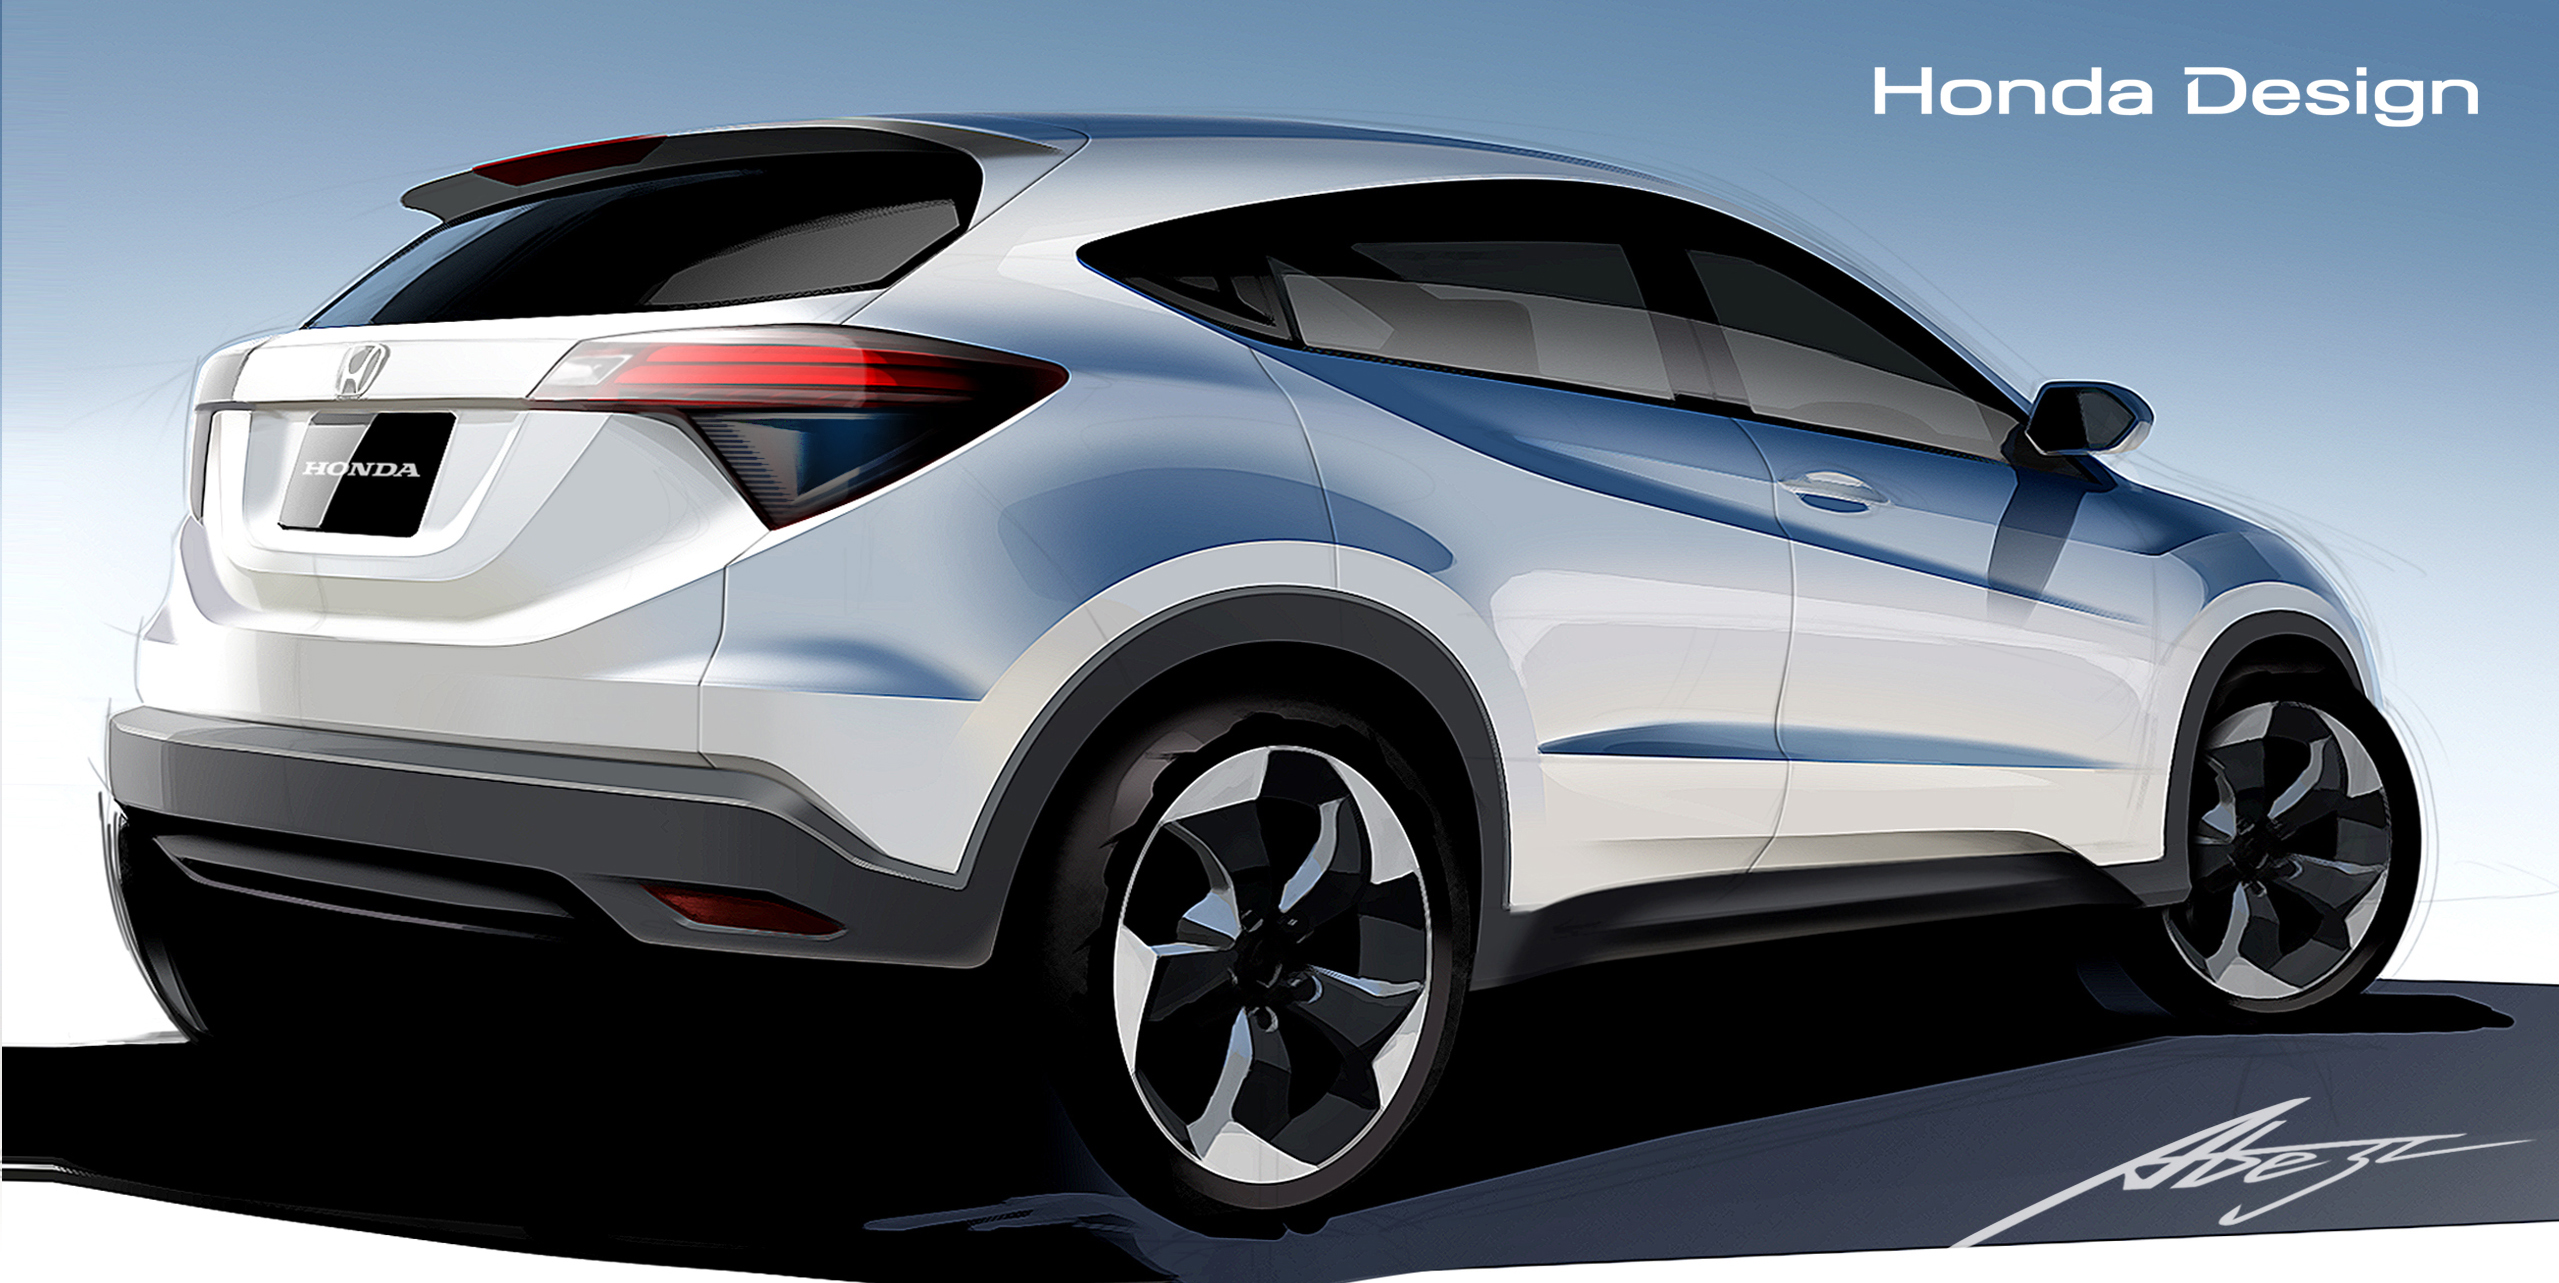 Honda Debut SUV Coupe Crossover FleetPointFleetPoint